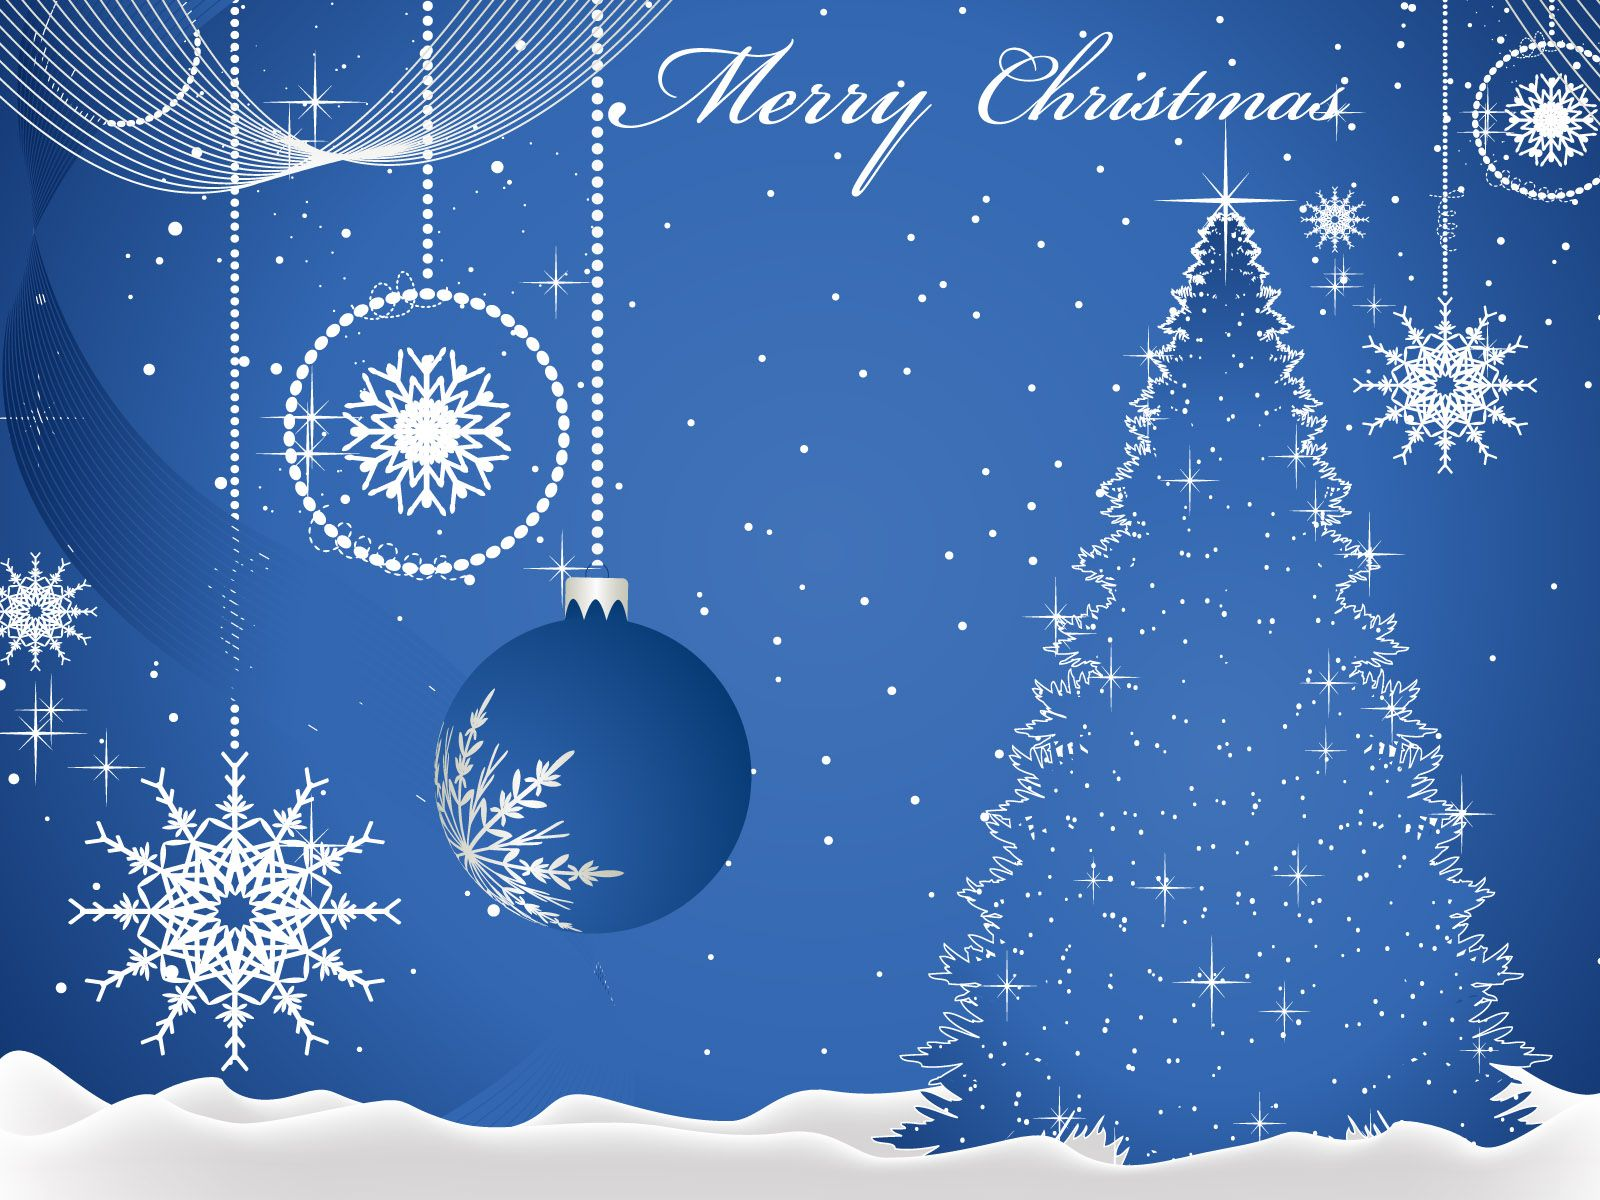 Send our Christmas cards to spread lots of Christmas cheer